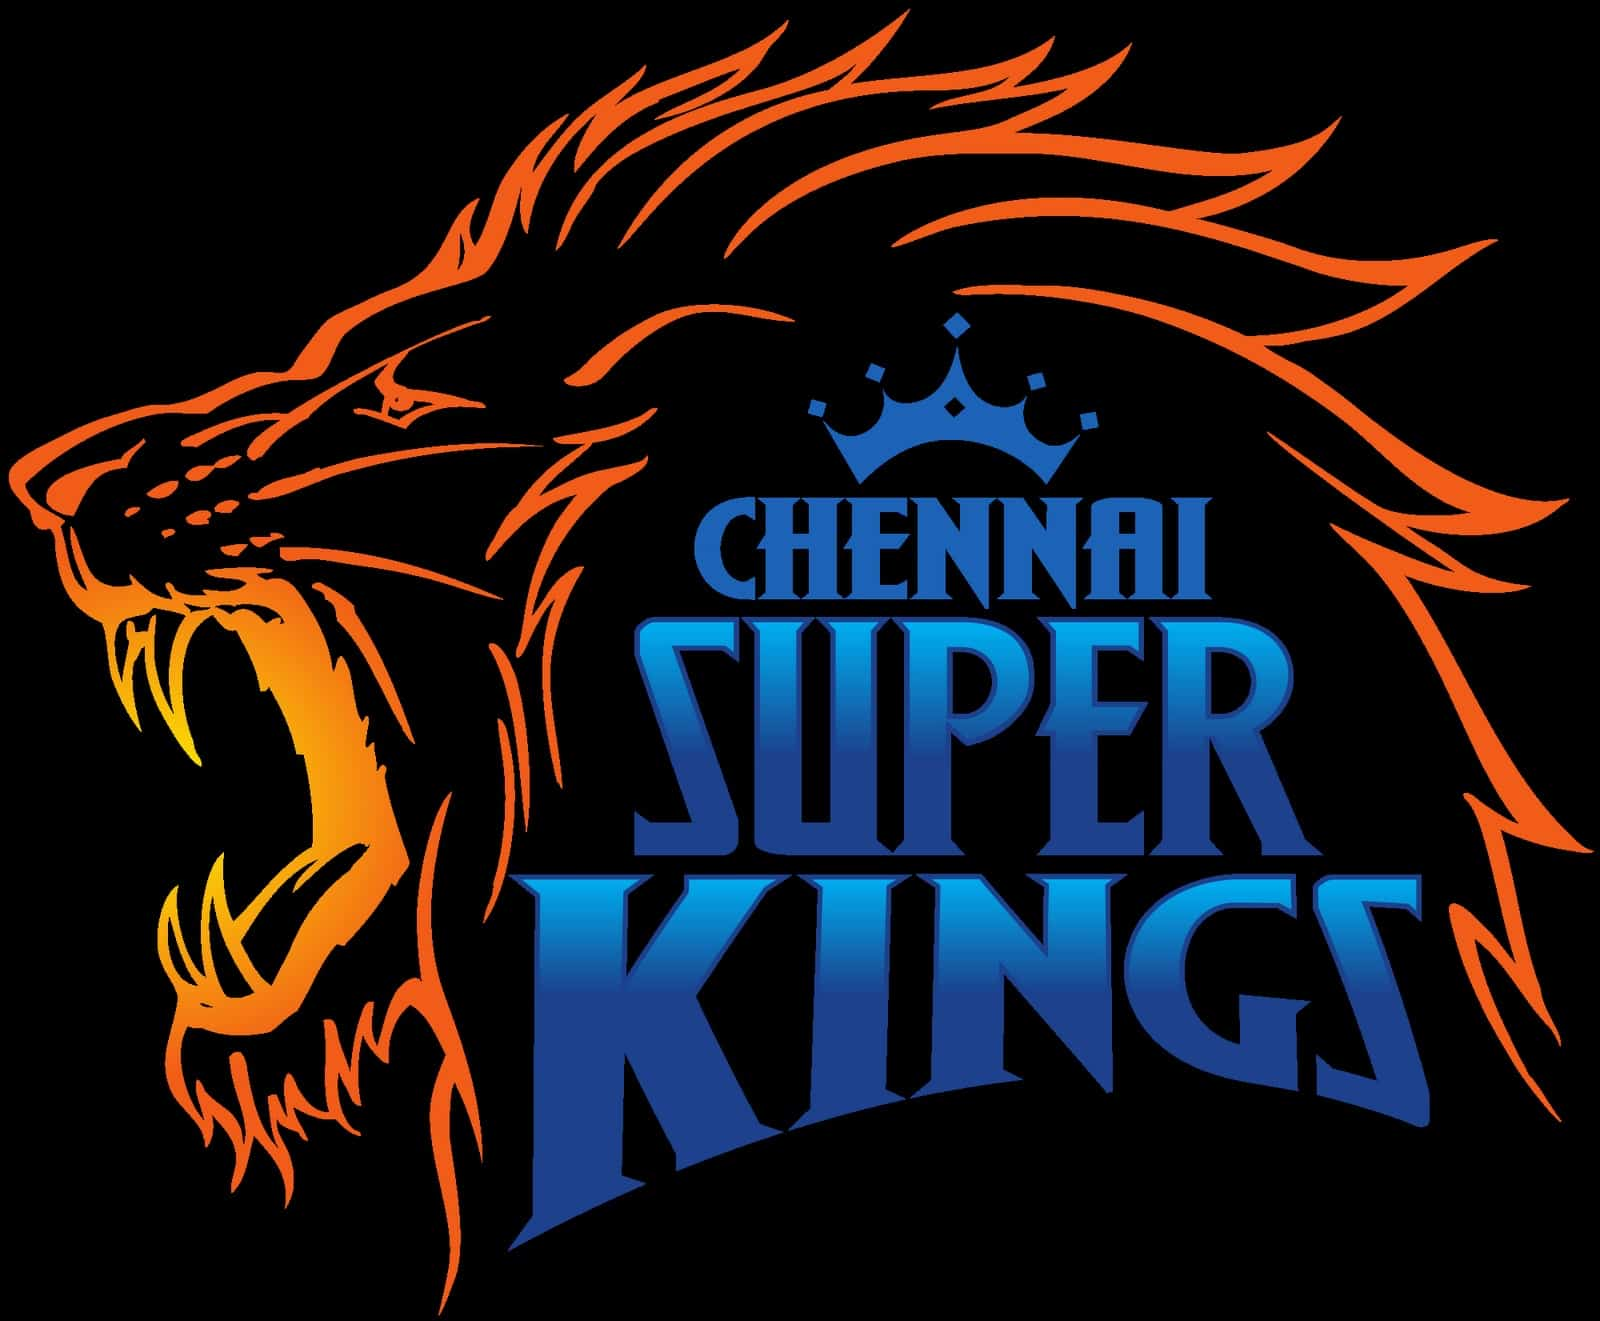 Chennai super kings pictures M: LED christmas lights